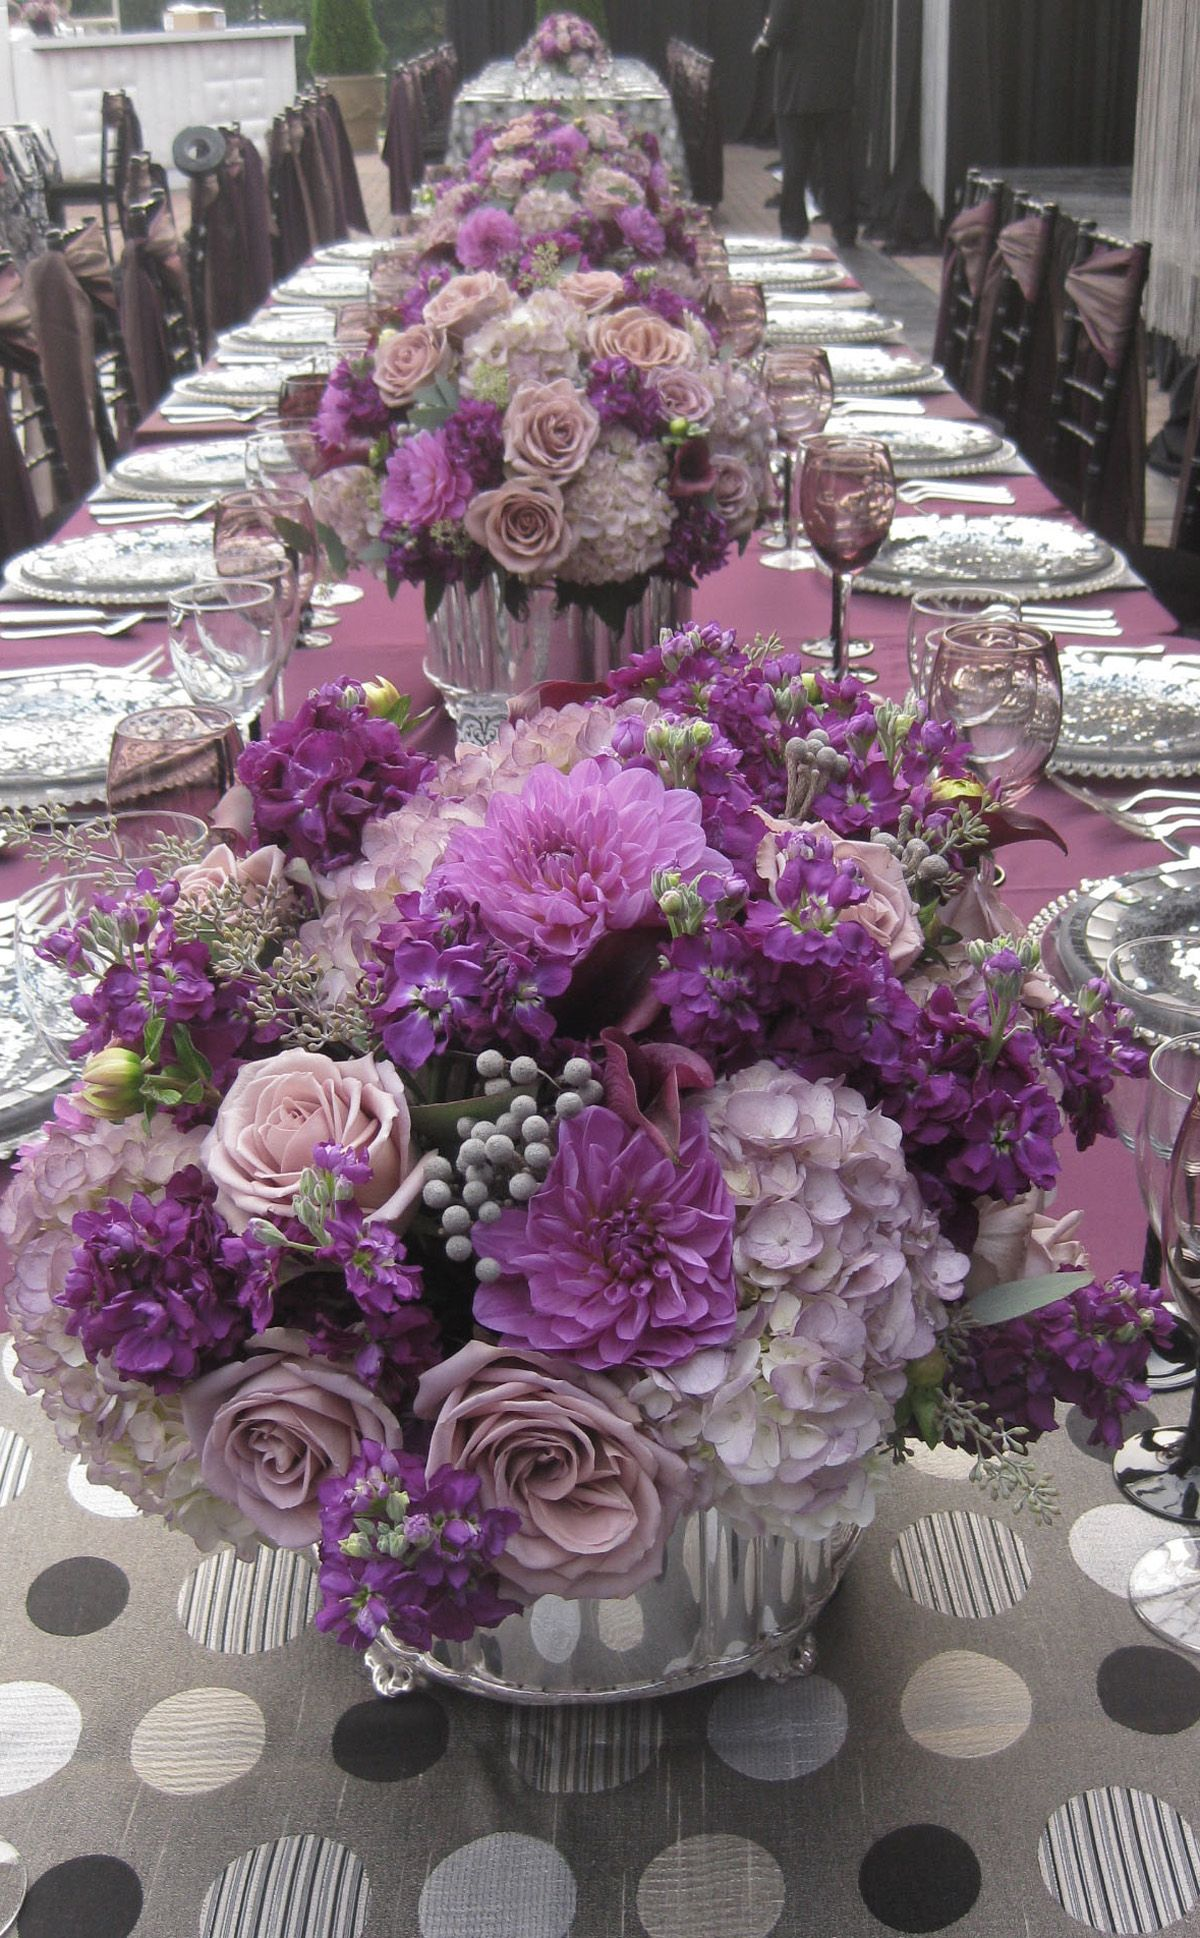 most popular wedding colors 10 pretty palettes centerpieces lilacs and violets. Black Bedroom Furniture Sets. Home Design Ideas